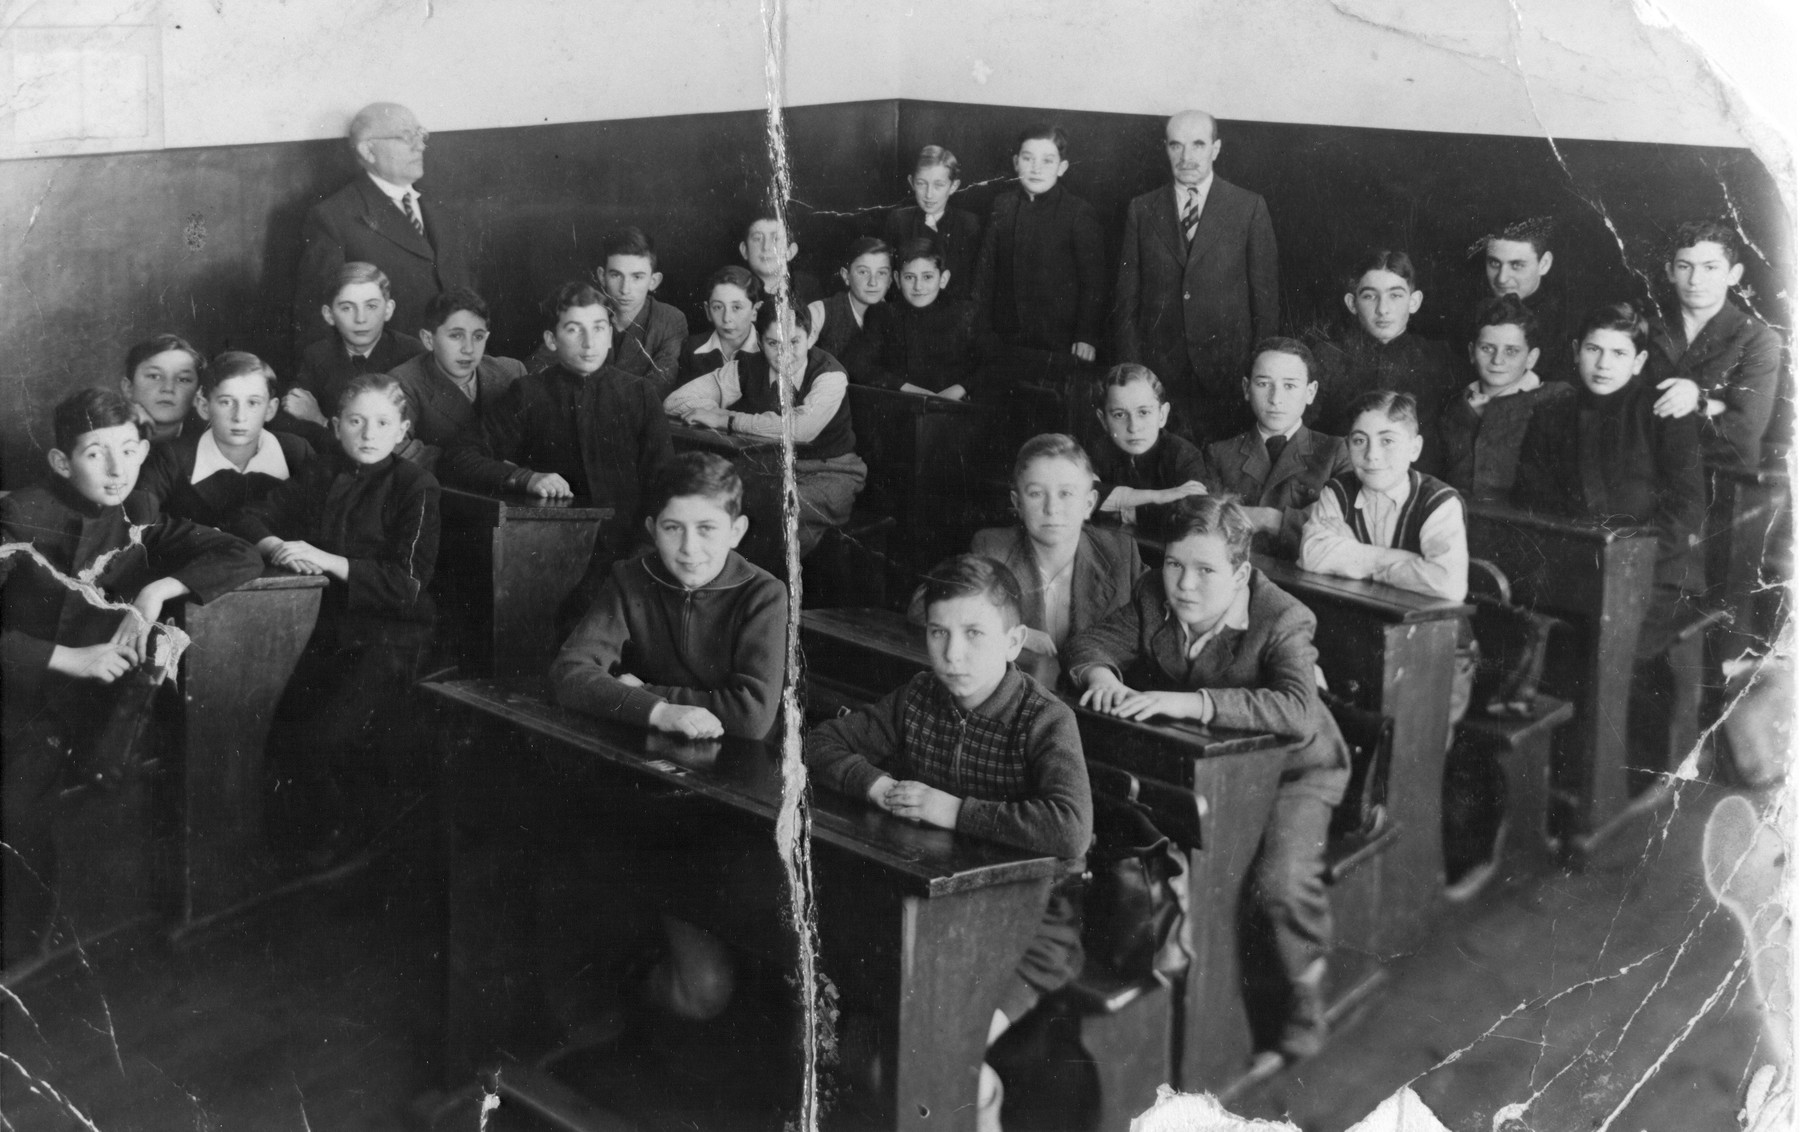 Class of the Real Hebrew Gymnasium, the first Hebrew high school in Kaunas.    Mr. Dumblansky, the Hebrew teacher, stands in the back of the room.  Those seated include Zev Birger, Fima Strom, Micklishansky, Memko Rubin, and Motke Fischer.